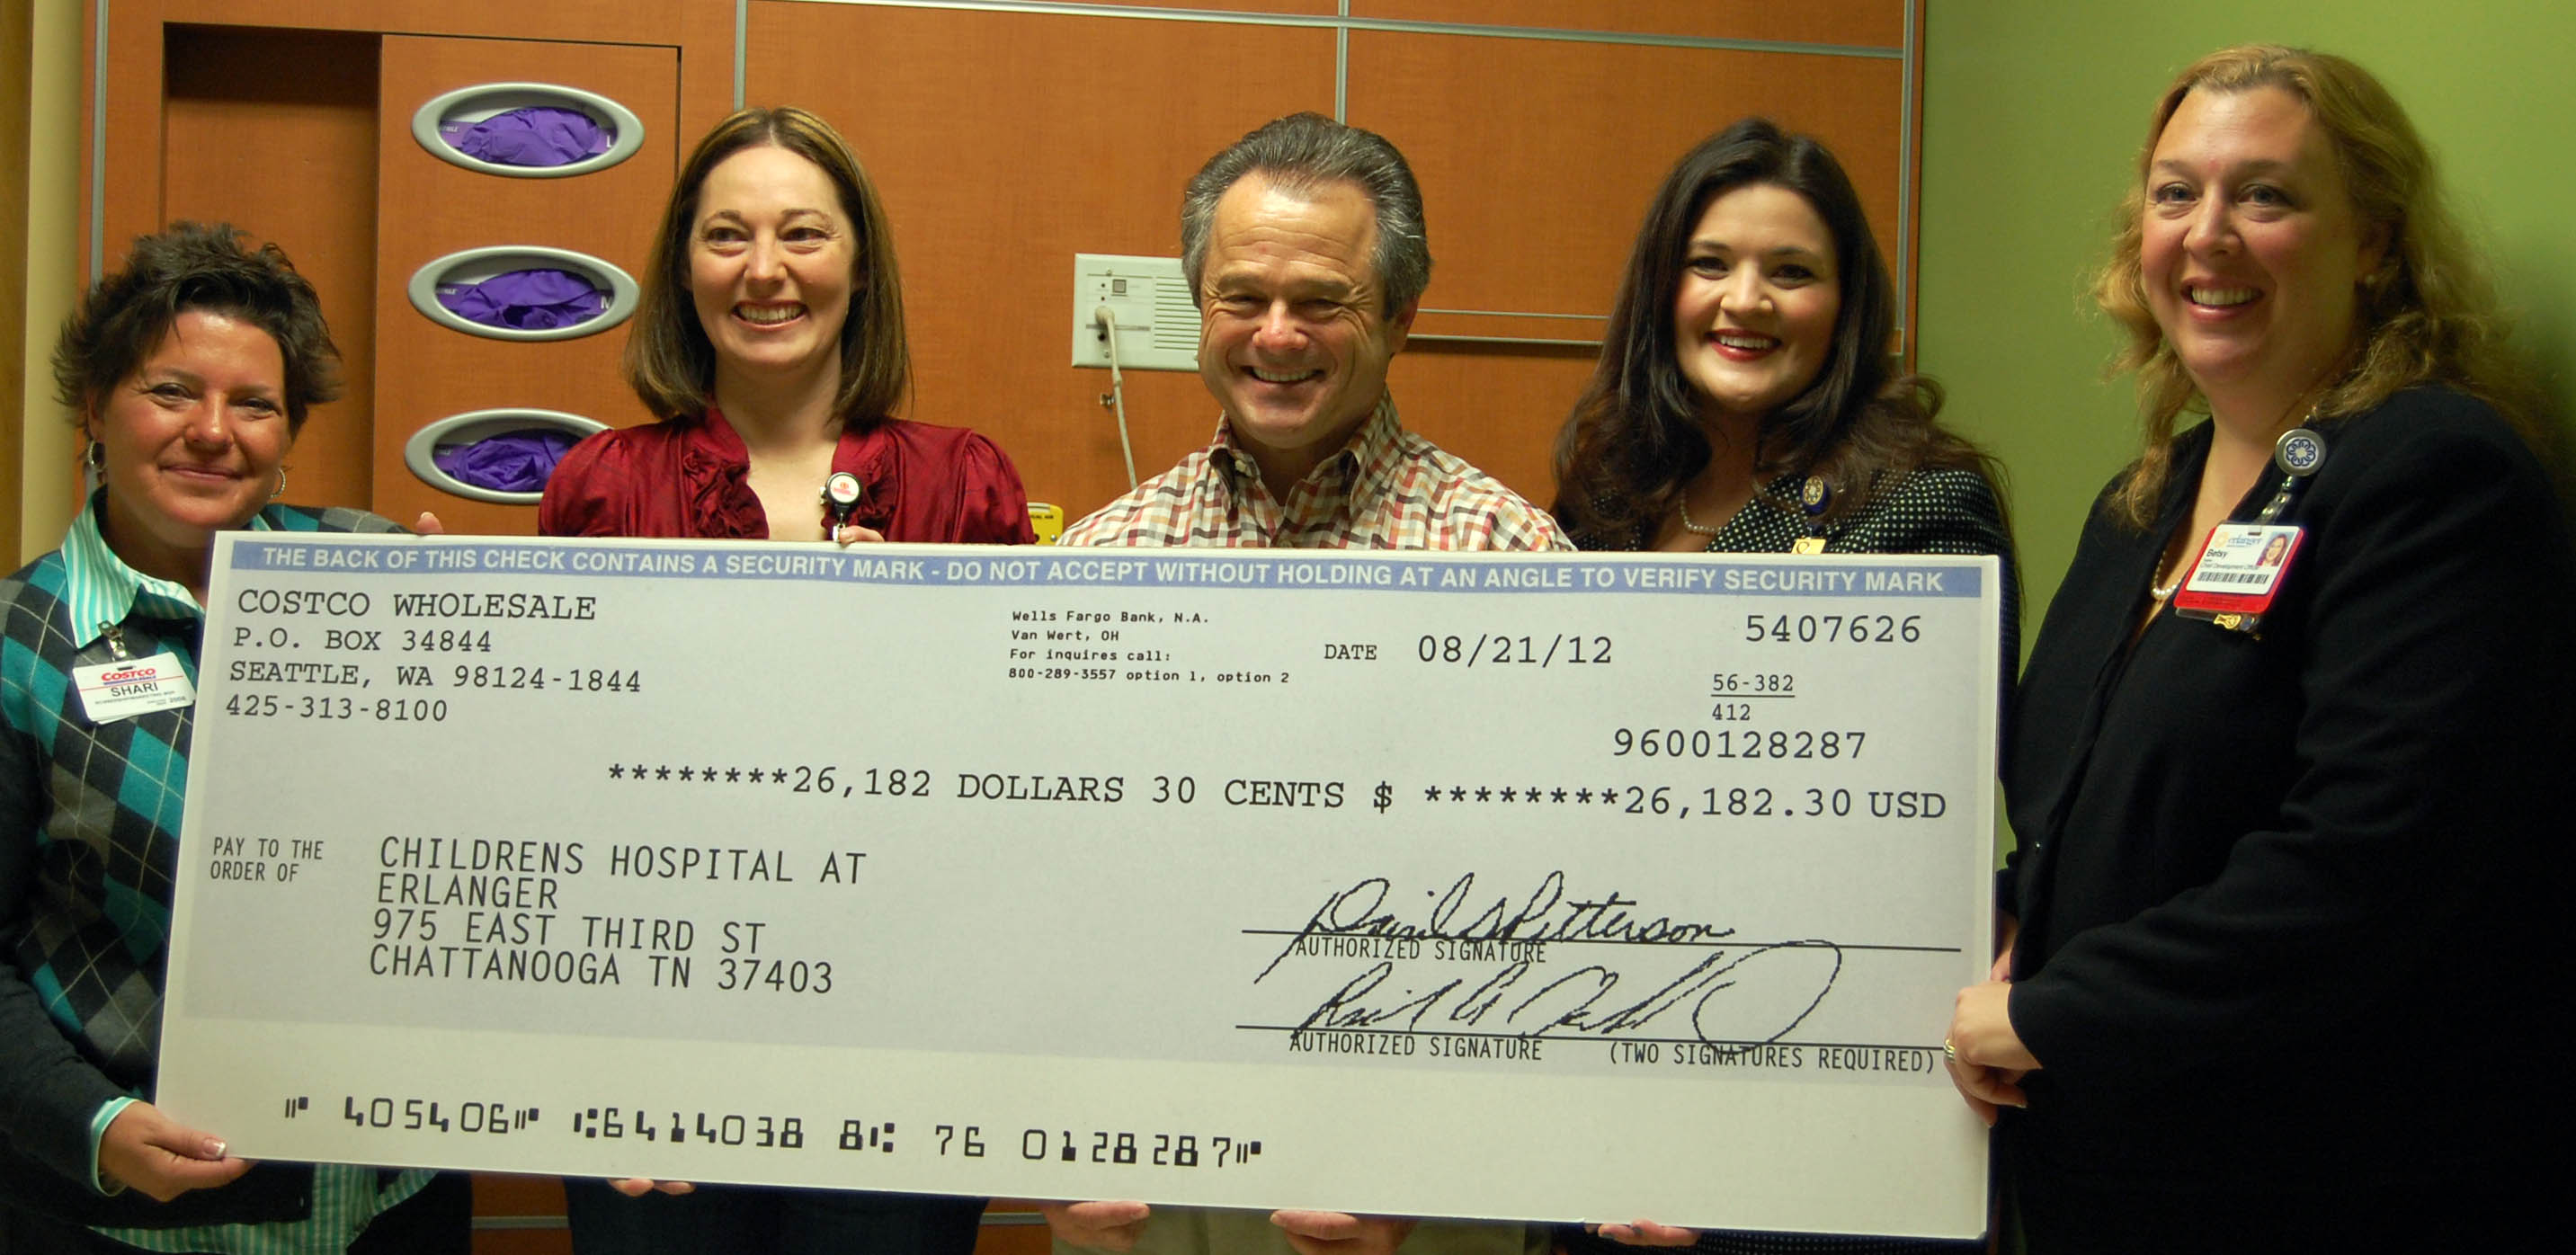 Costco representatives Shari Wolfs, Julie Brown and Bob Palermo along with Rebecca Brinkley, Children's Miracle Network Coordinator for Children's Hospital and Betsy Taylor, President of Erlanger Health System Foundations